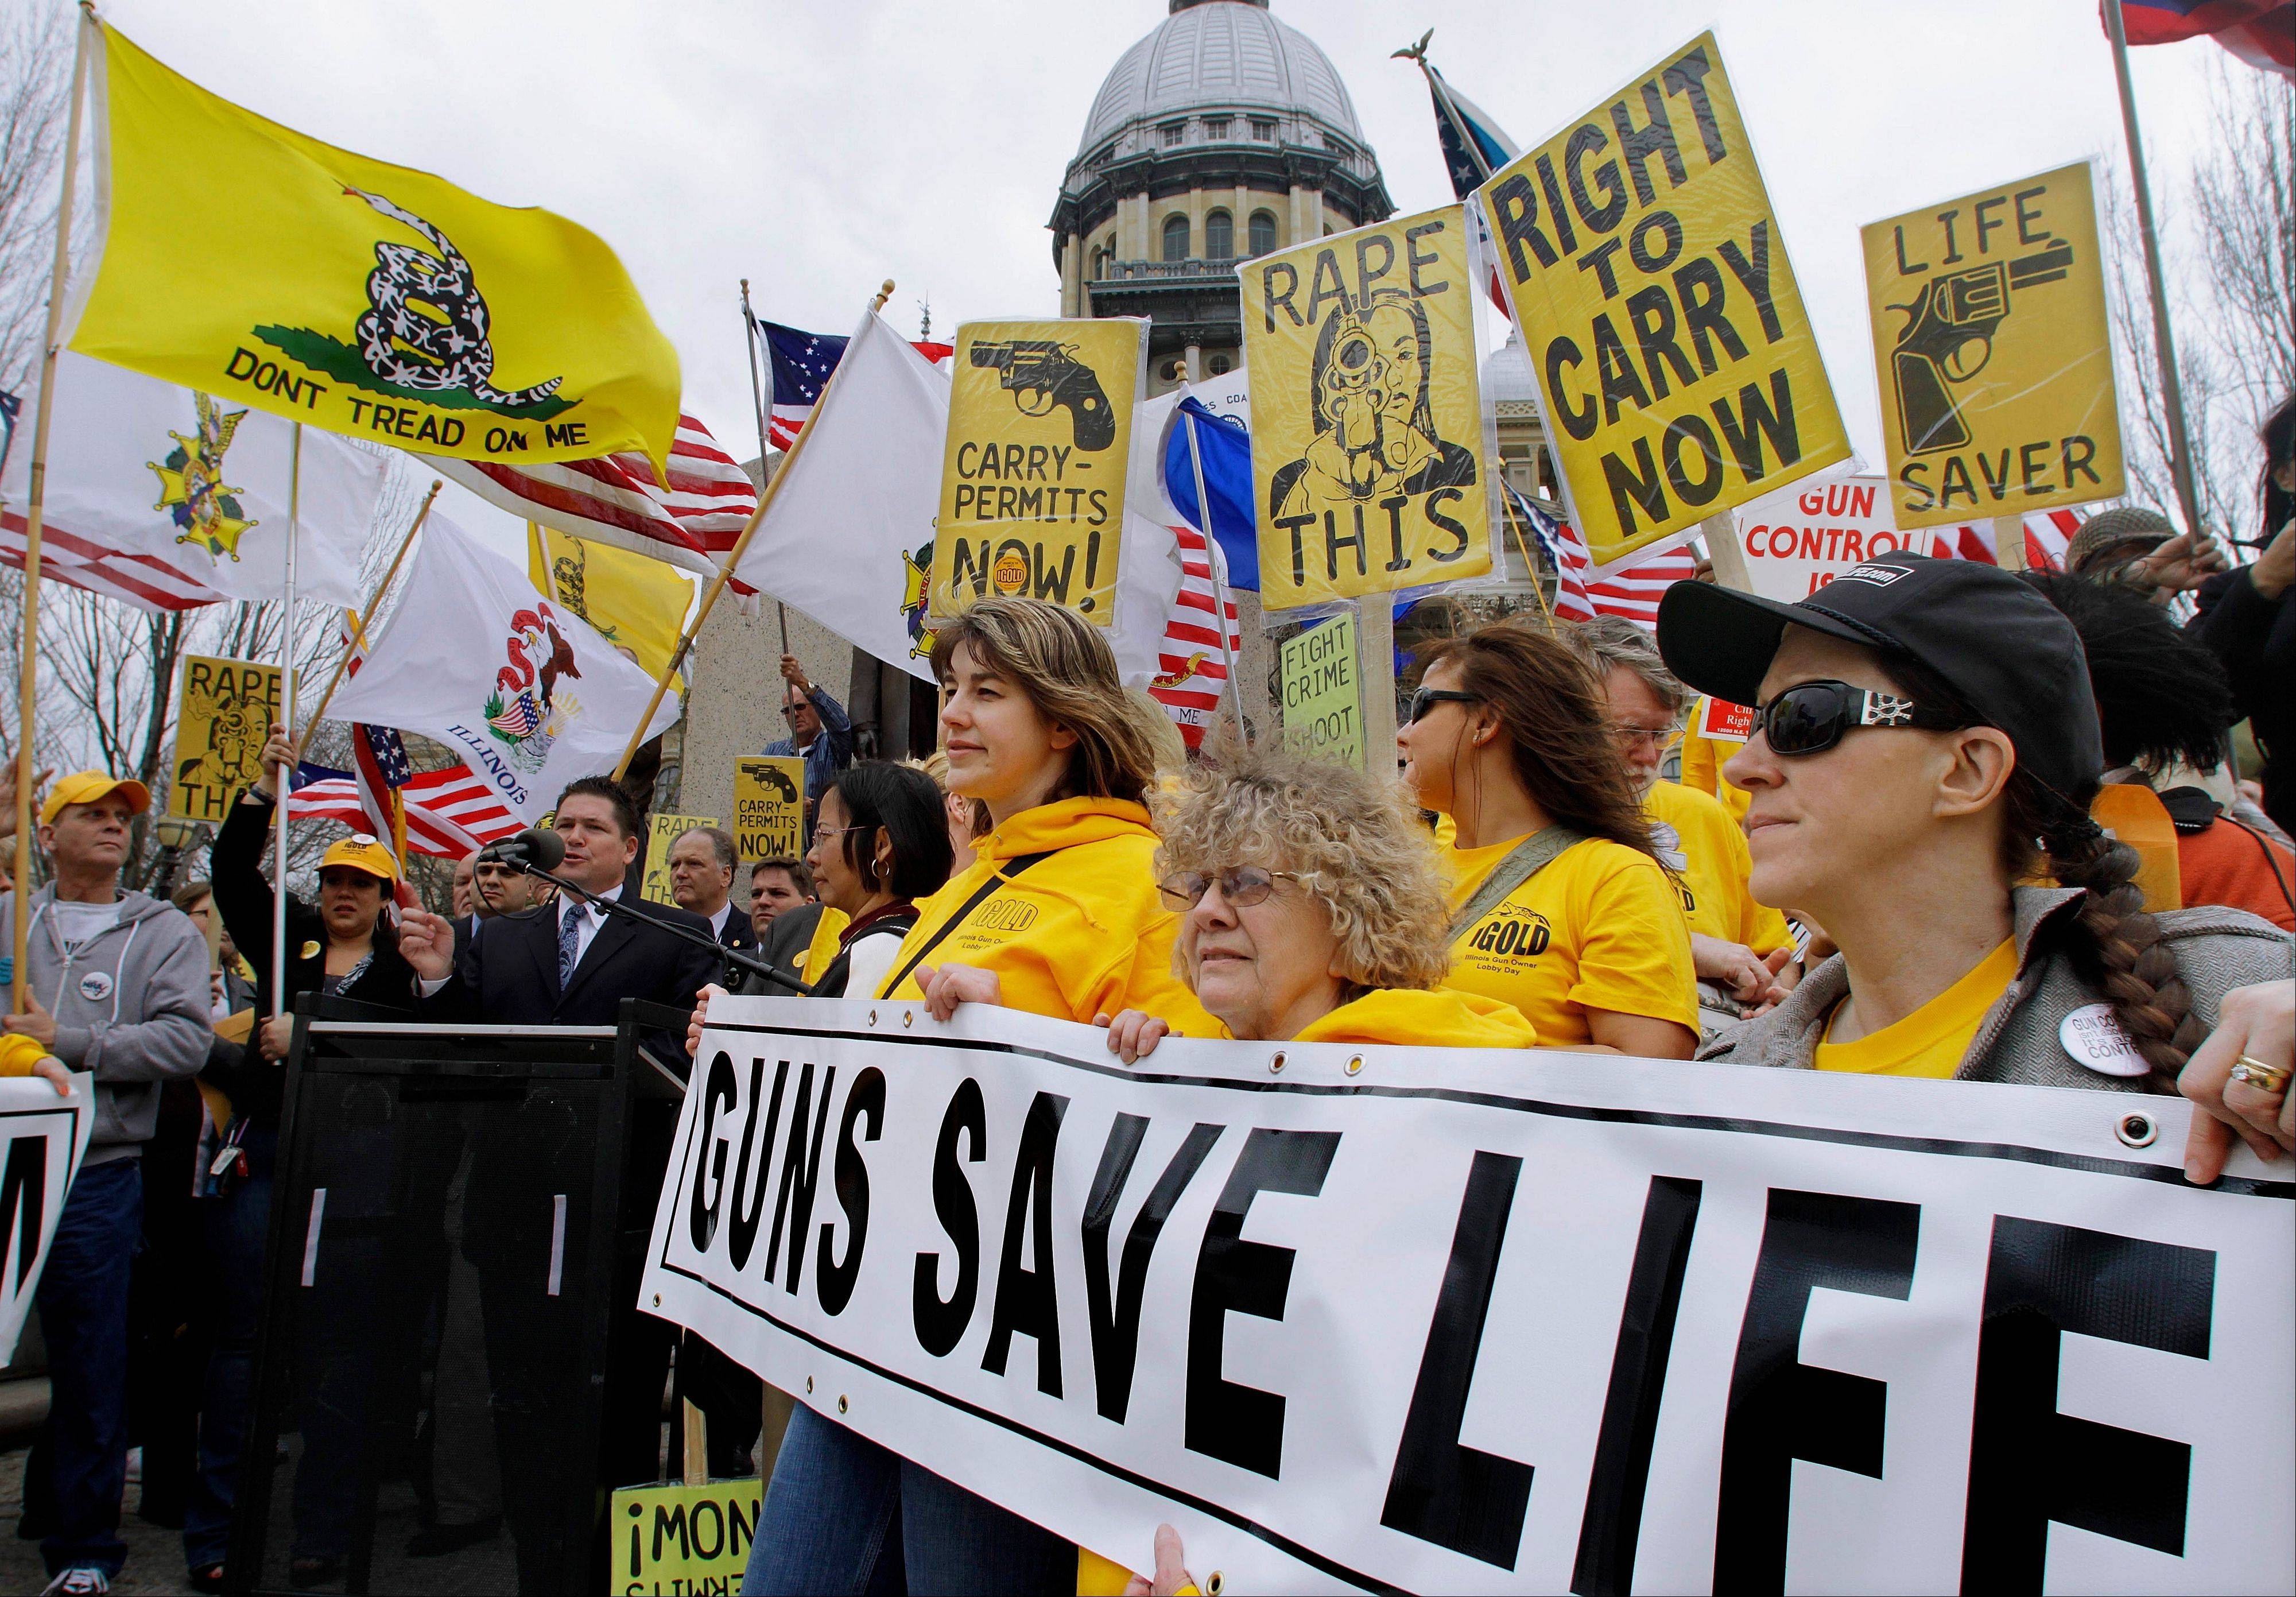 Members of the pro-gun group Guns Save Life rally at the Illinois State Capitol last March 7.